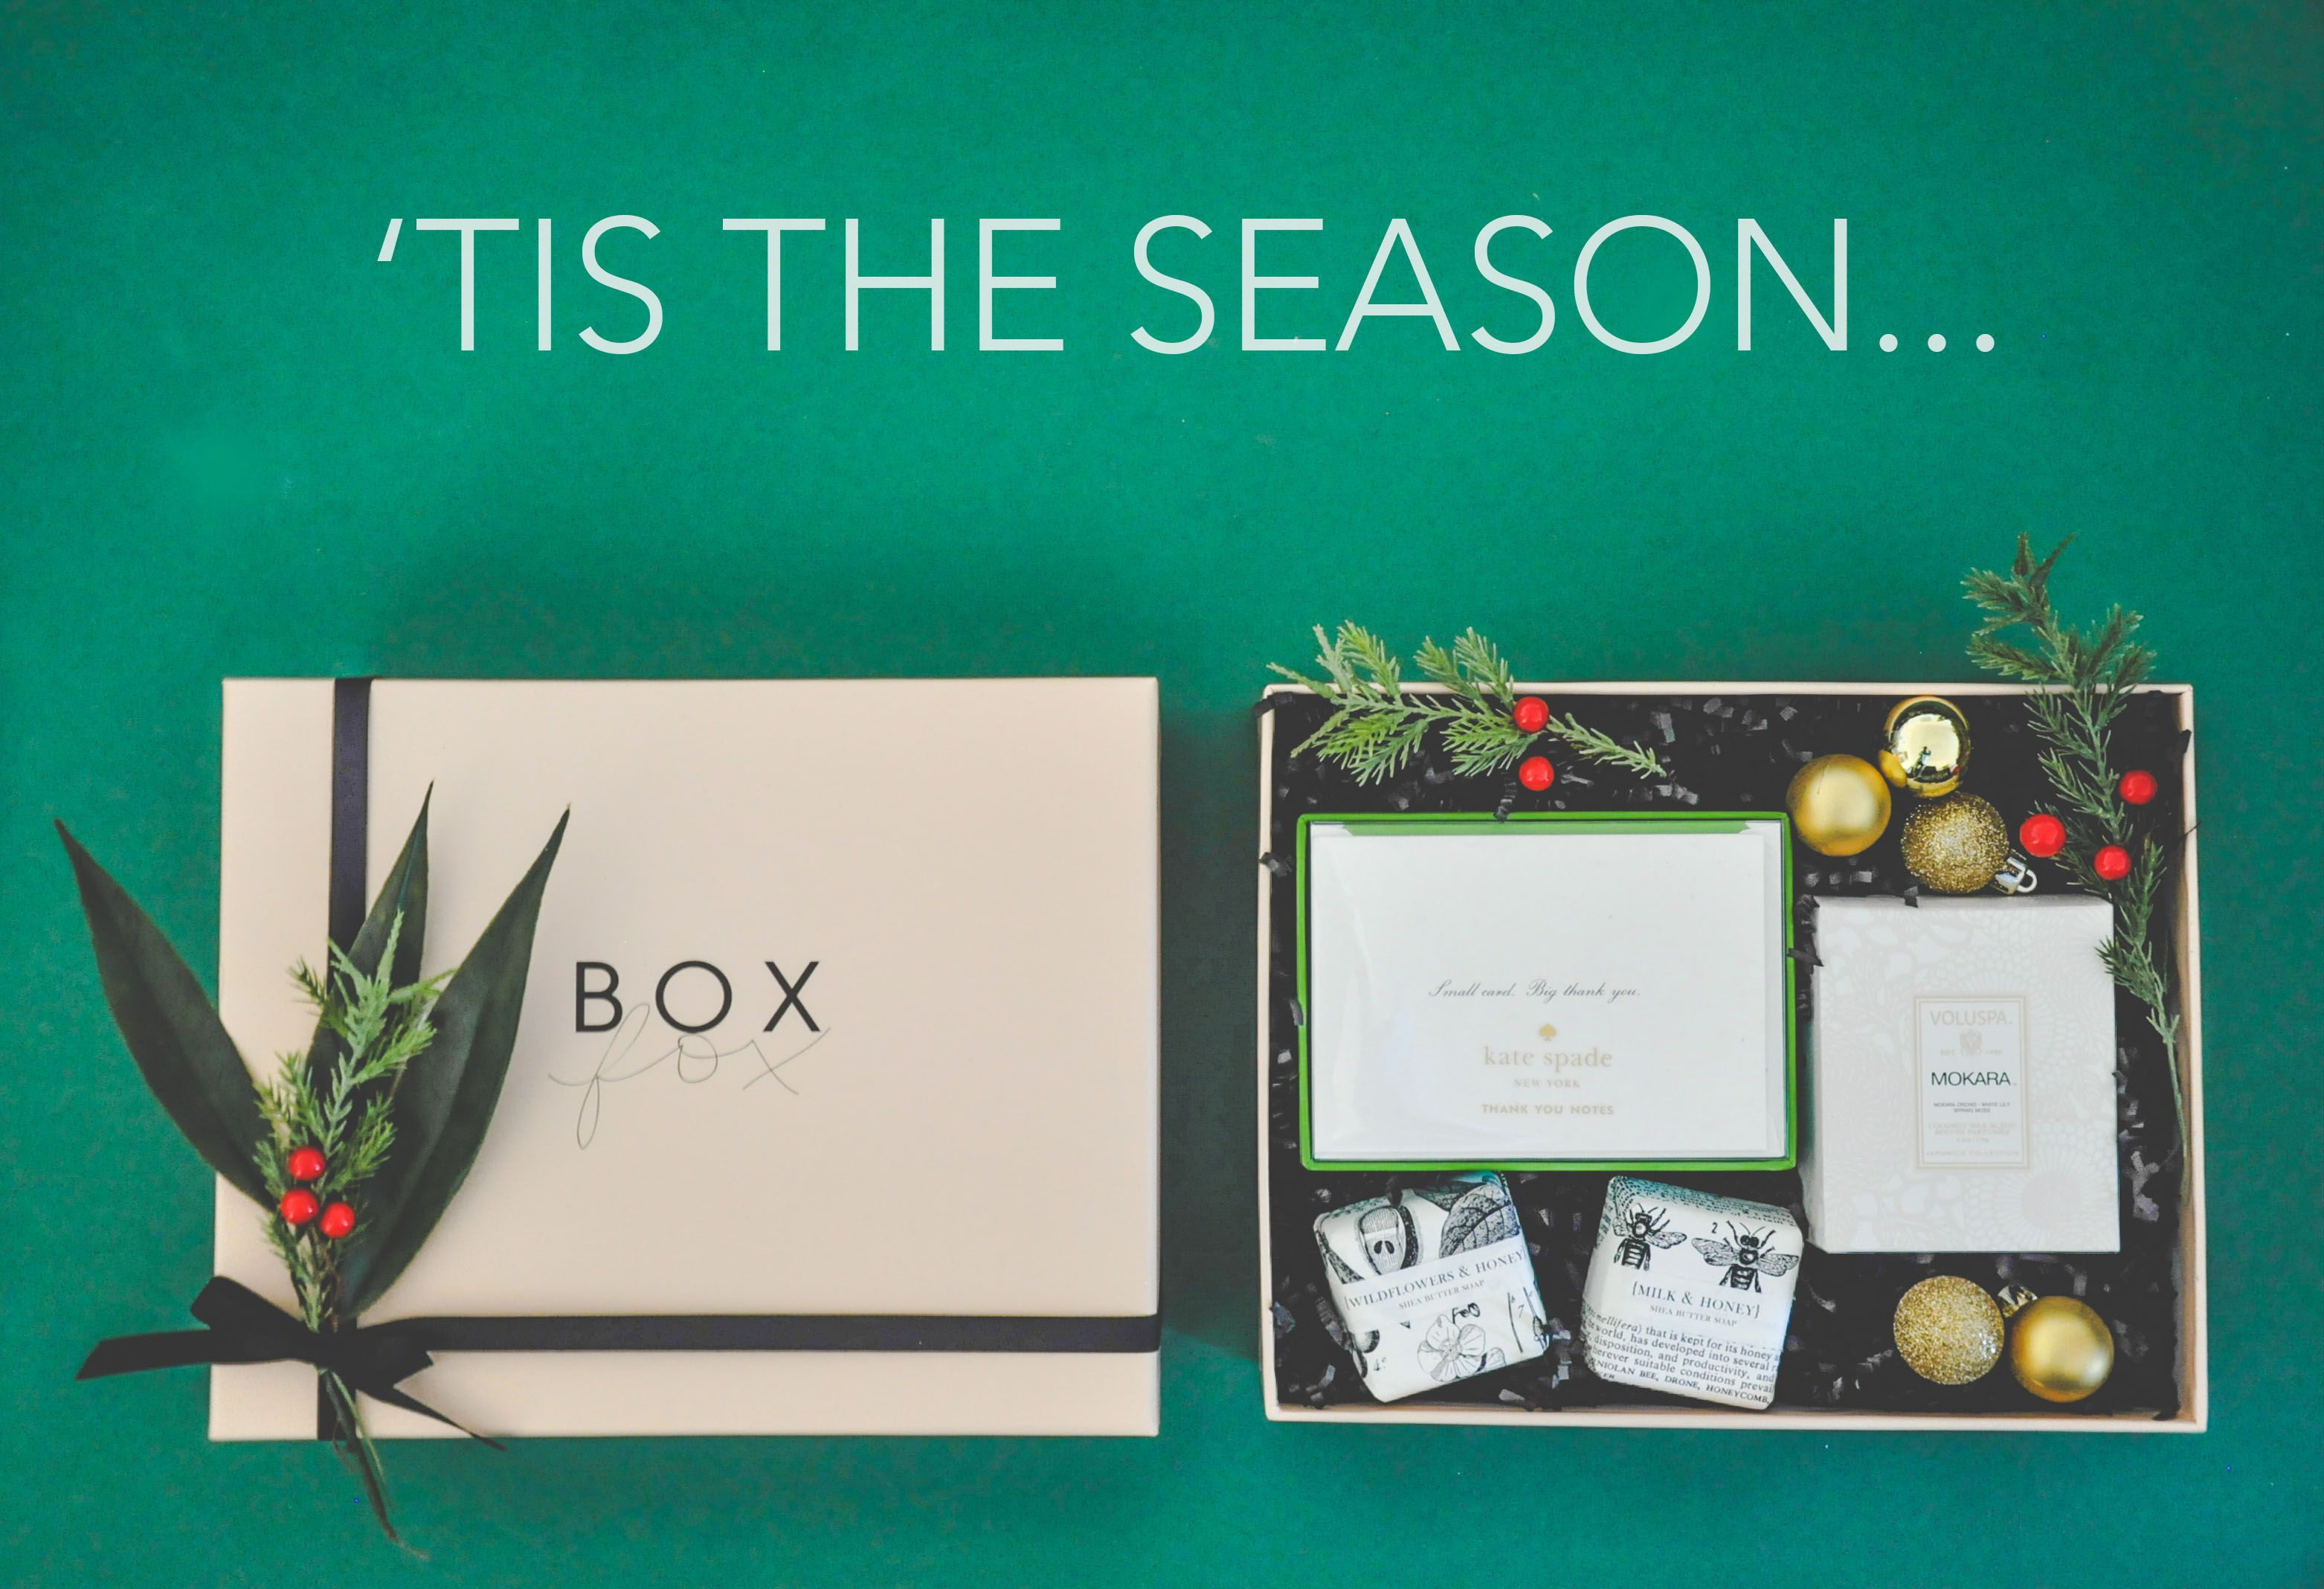 Shopping online for unique gifts? Check out brand new BOXFOX